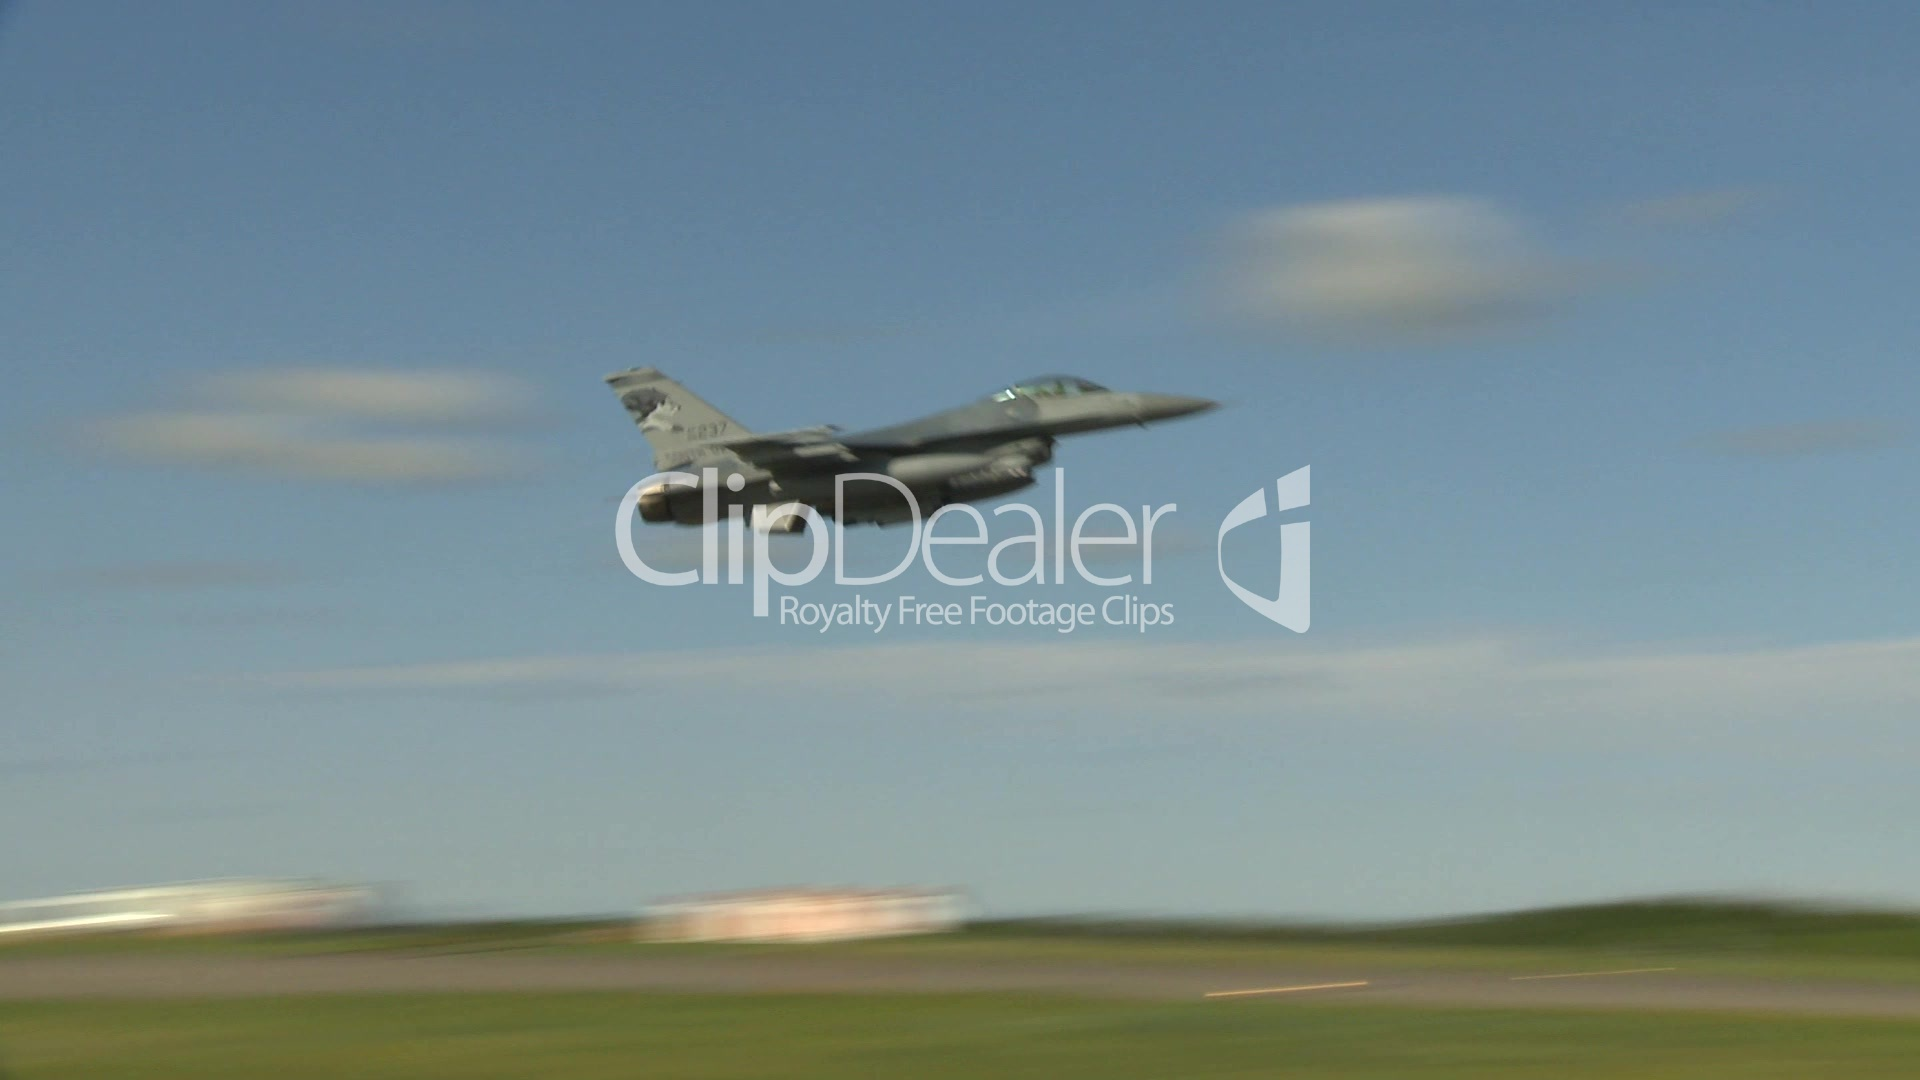 HD2009-6-2-41 F16 Falcon takeoff: Royalty-free video and